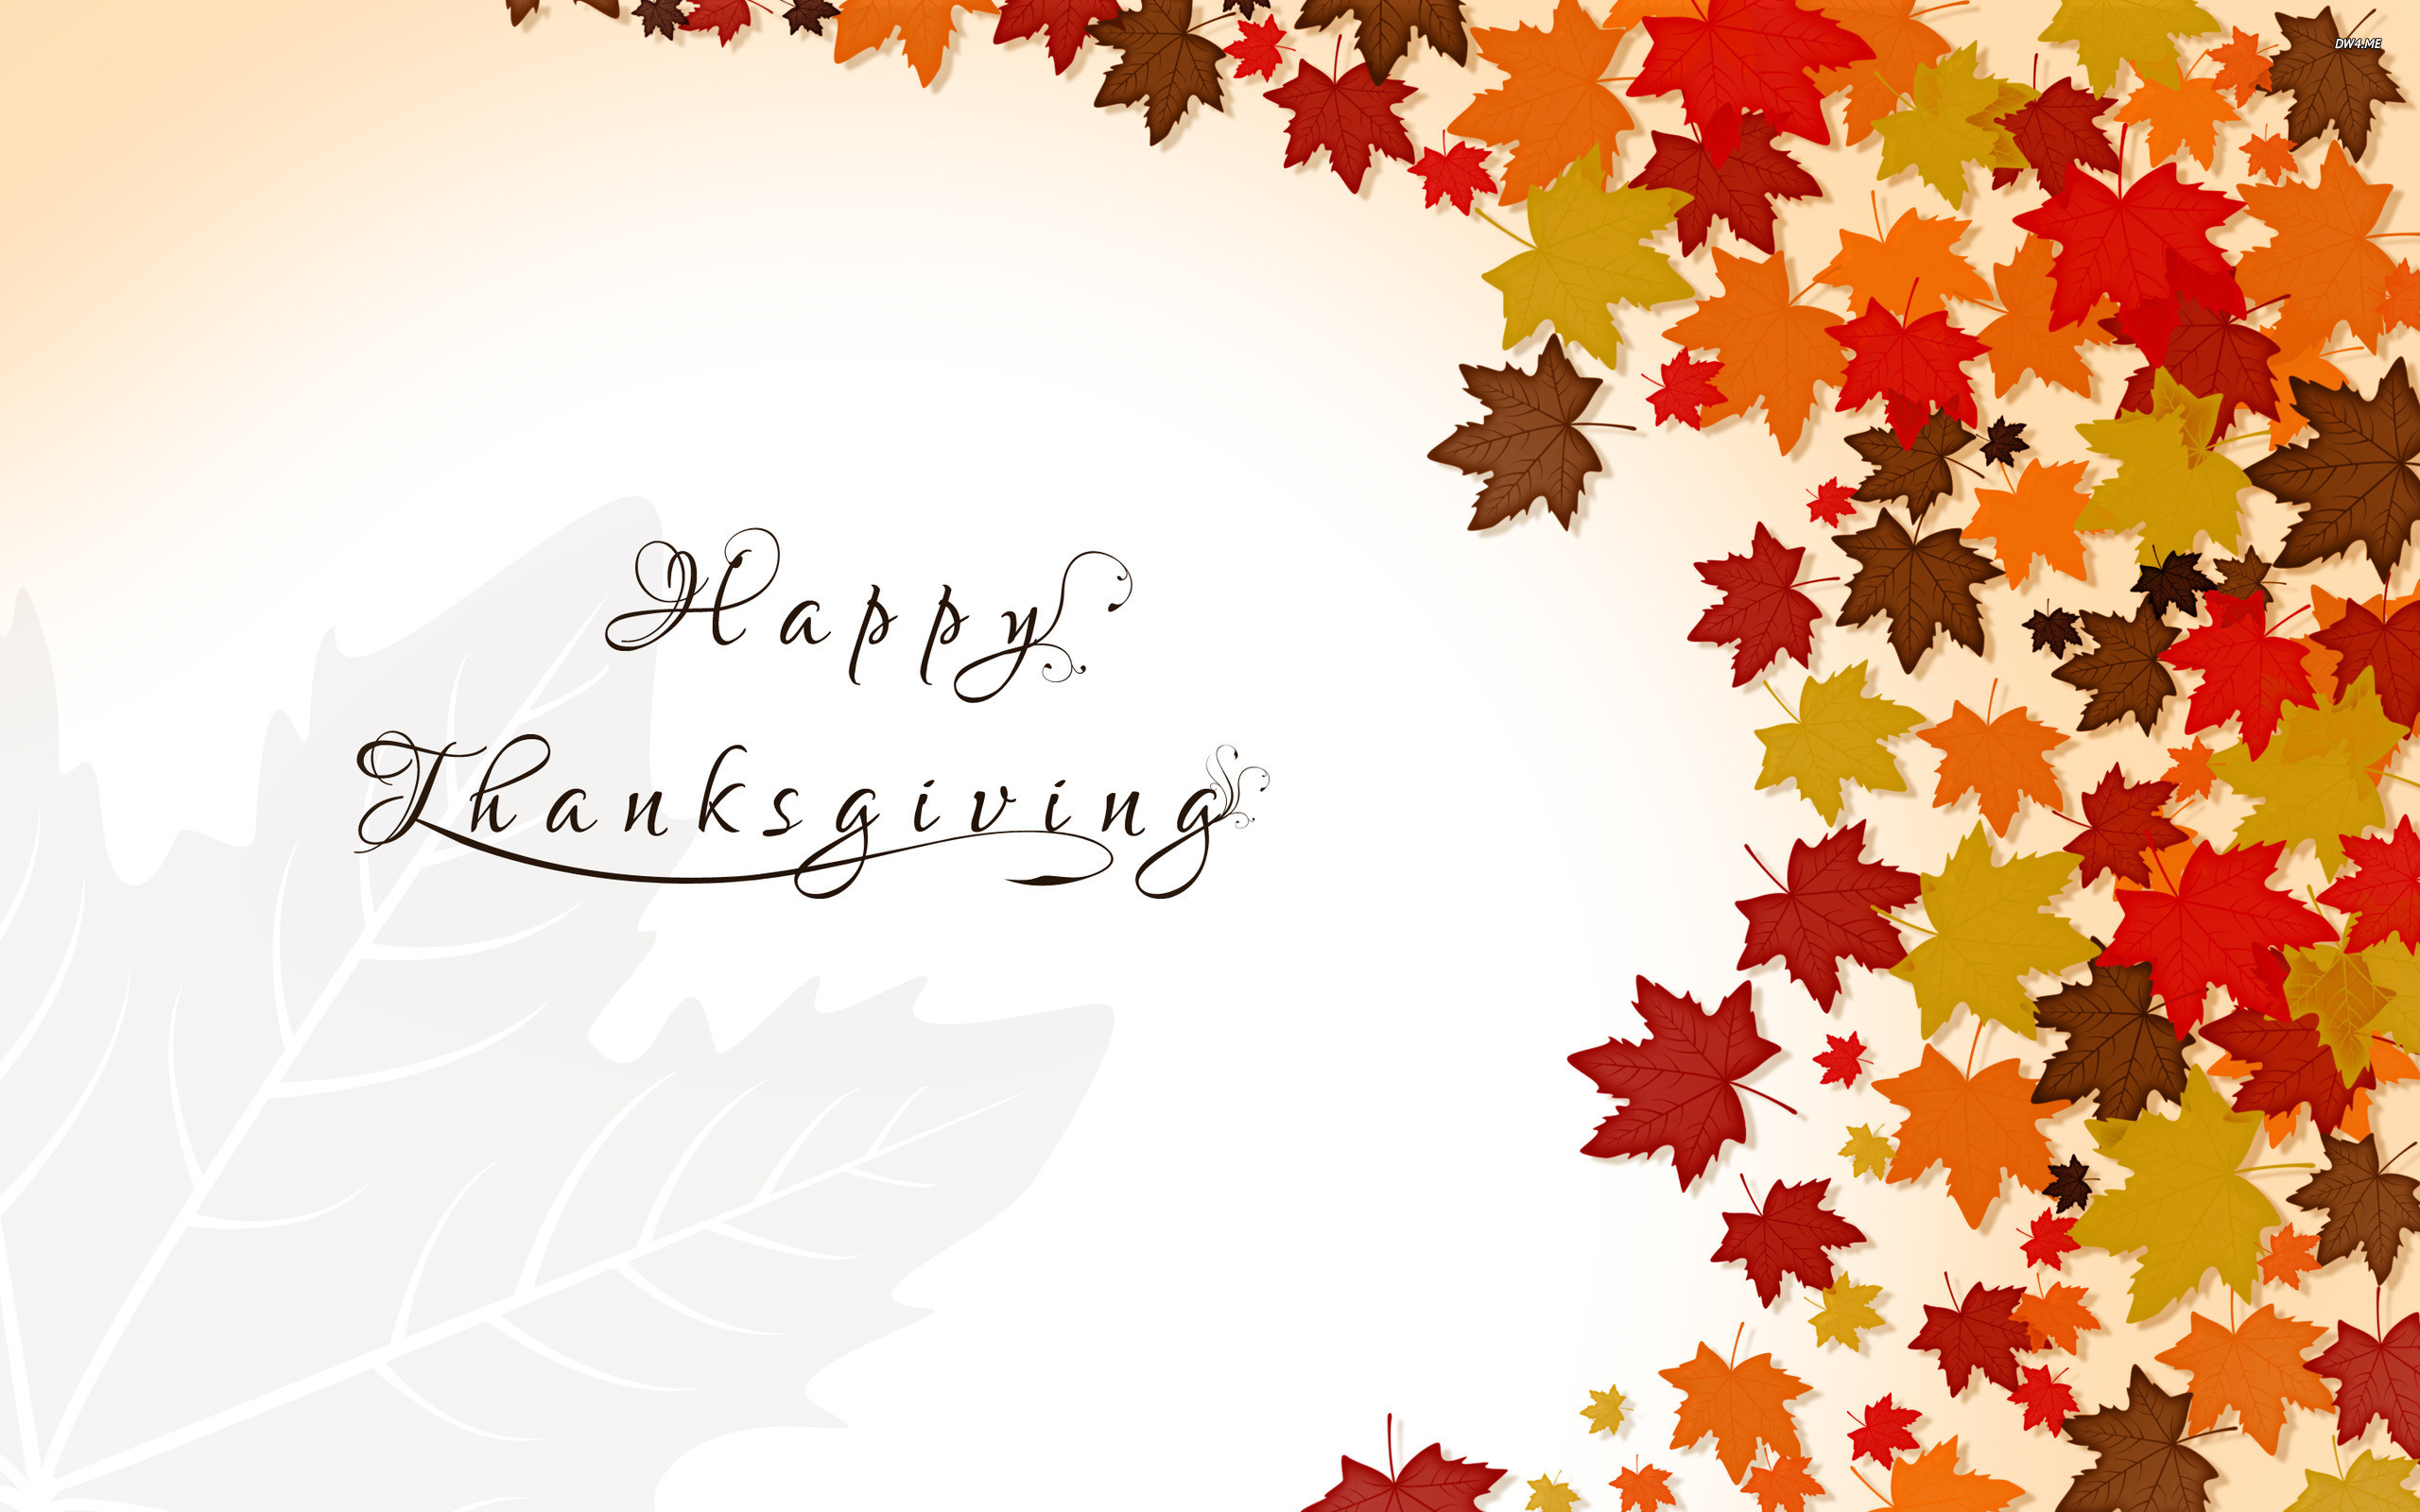 2560x1600 thanksgiving wallpapers greeting. Â«Â«